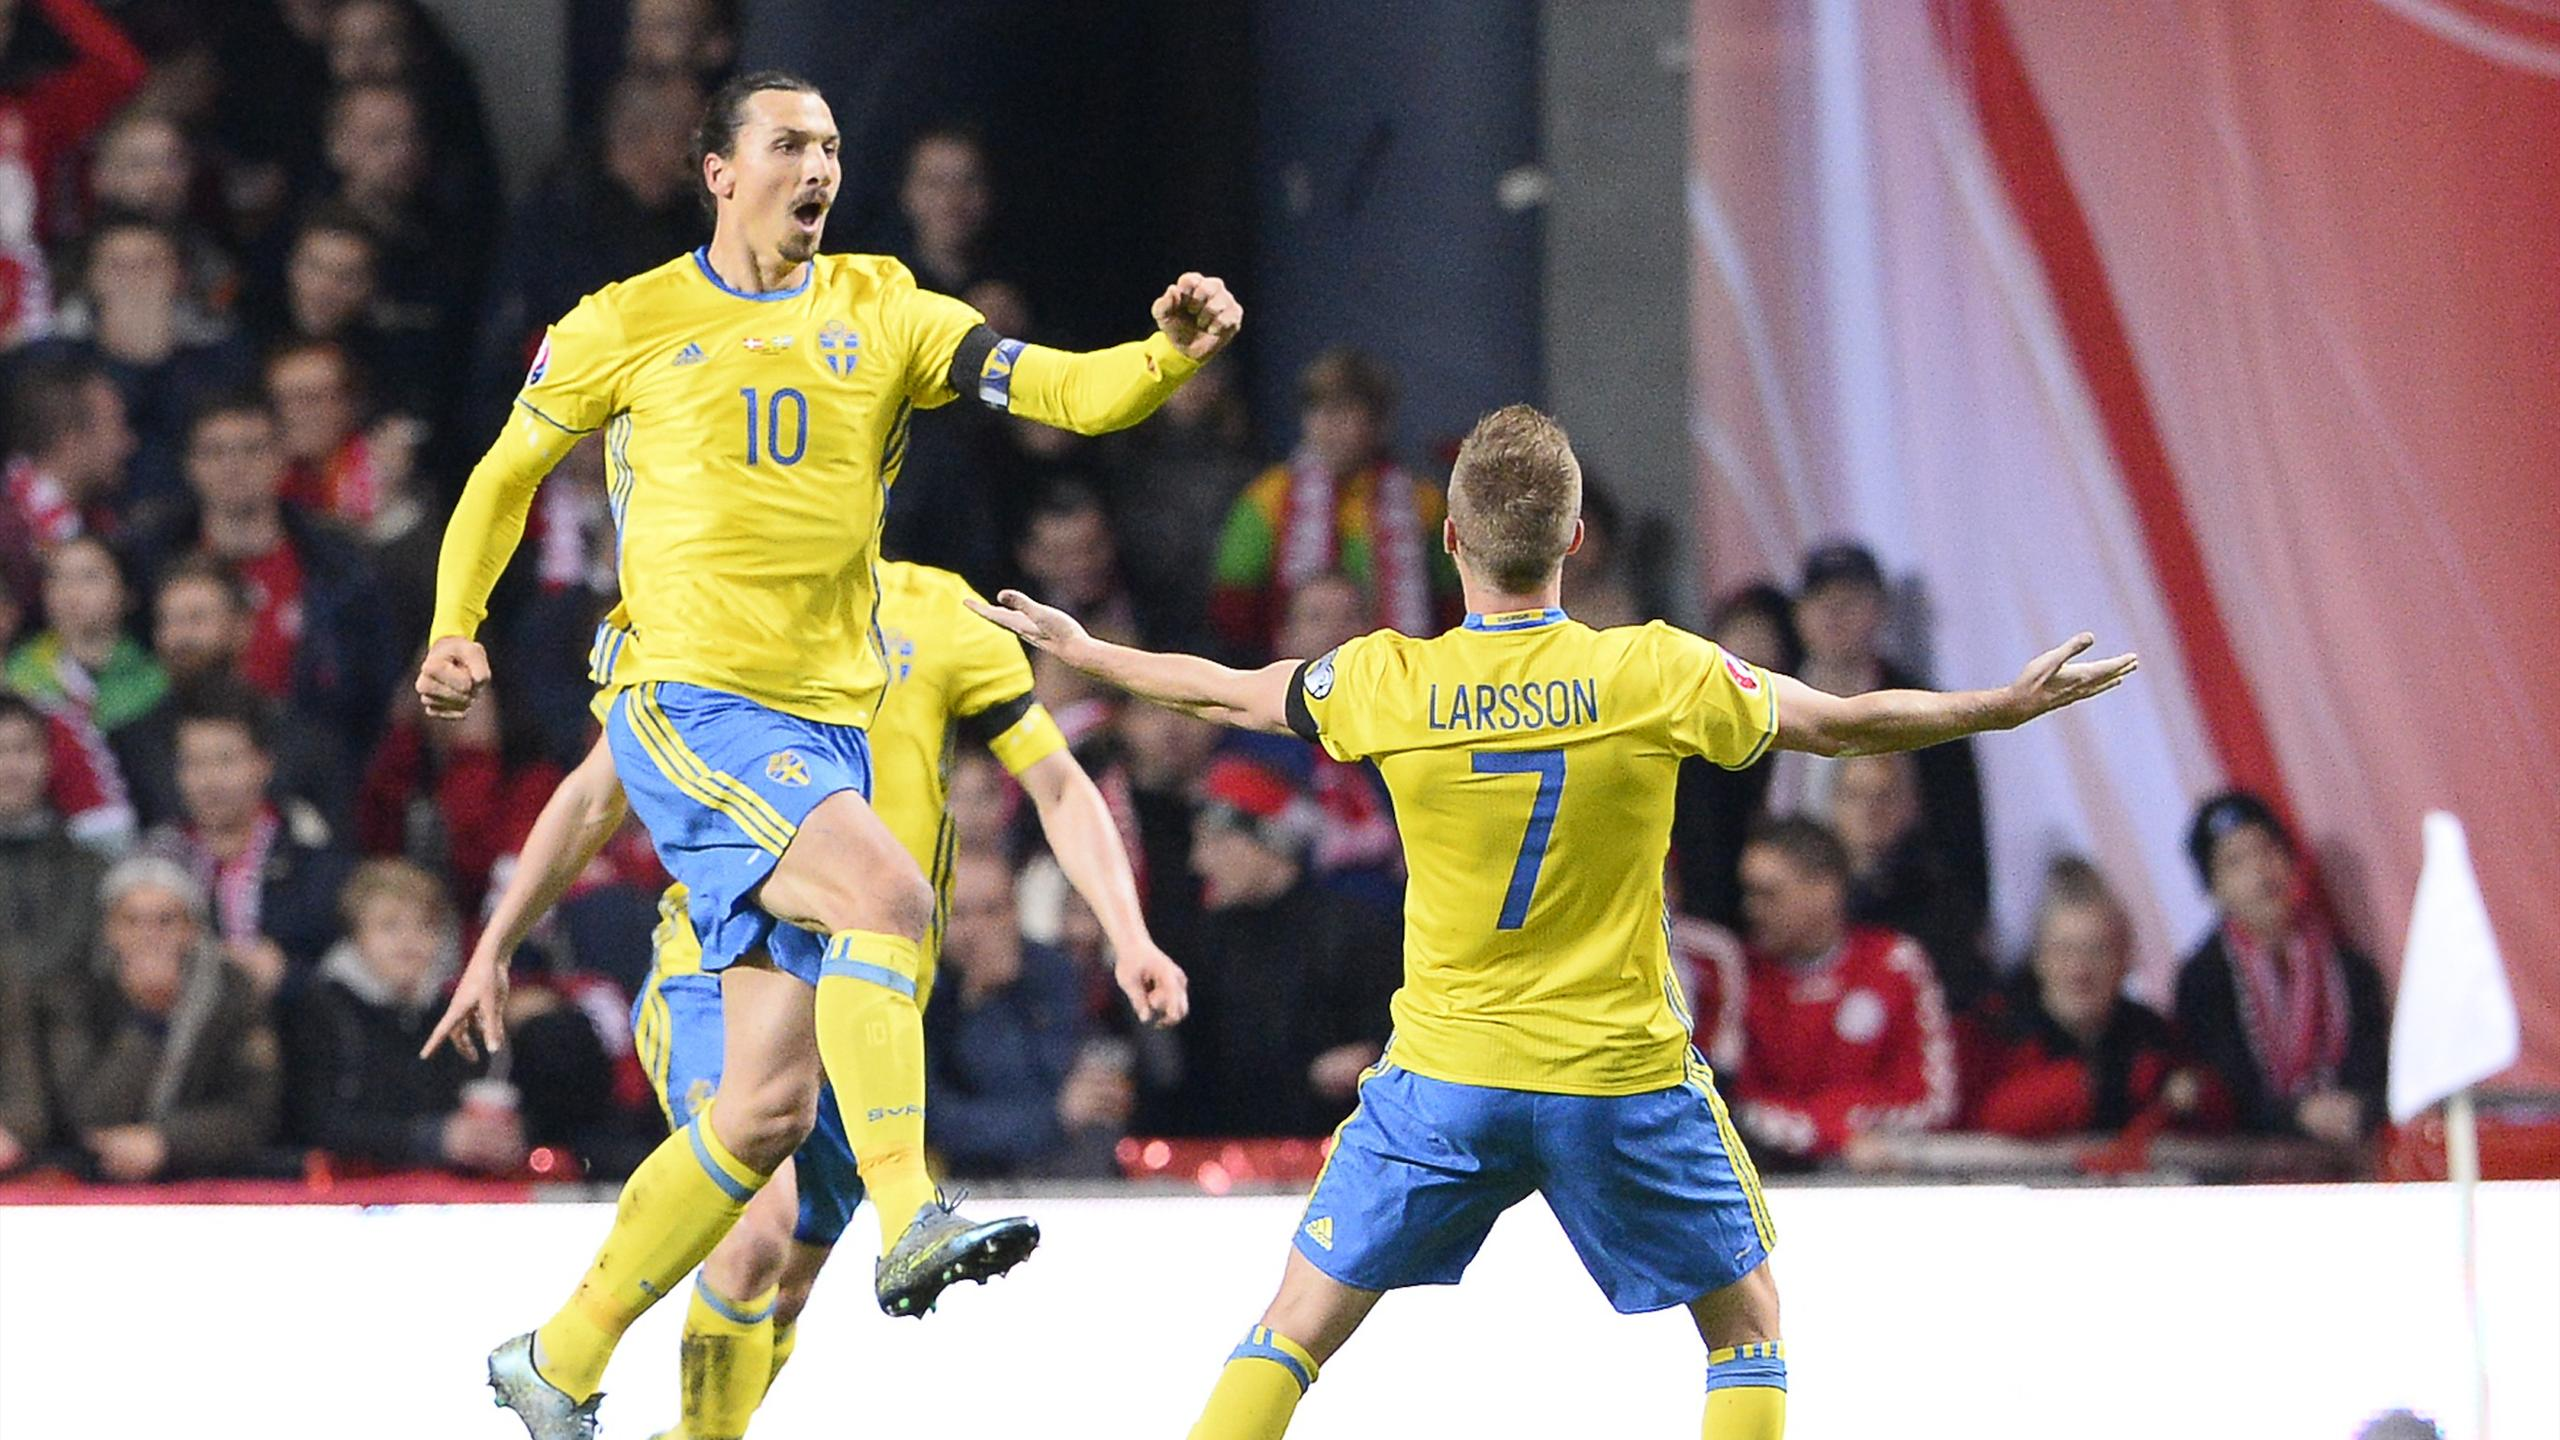 Sweden's forward and captain Zlatan Ibrahimovic (L) celebrates after scoring a goal during the Euro 2016 second leg play-off football match against Denmark at Parken stadium in Copenhagen